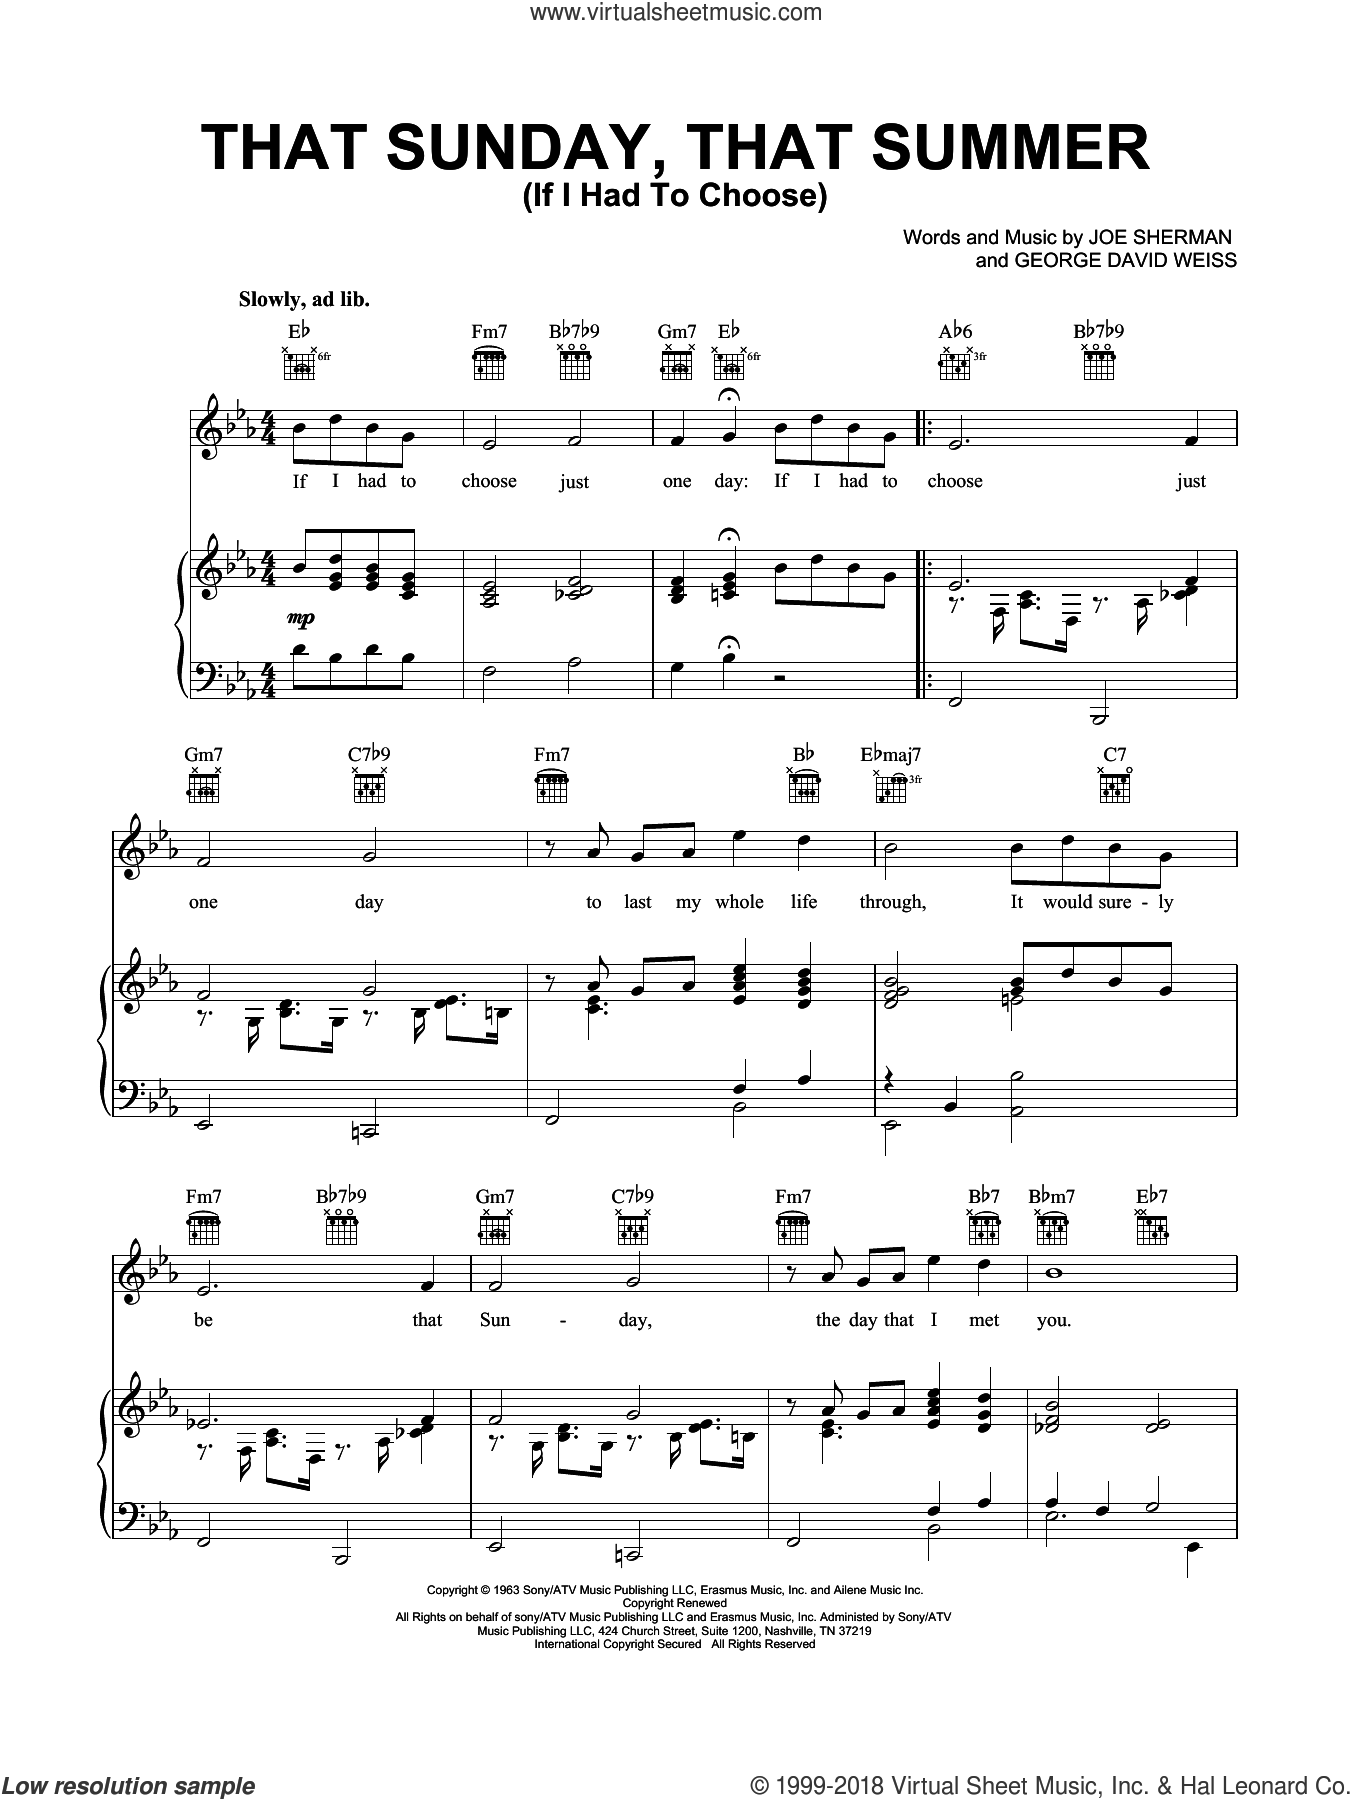 That Sunday That Summer (If I Had To Choose) sheet music for voice, piano or guitar by George David Weiss, Nat King Cole and Joe Sherman, intermediate skill level